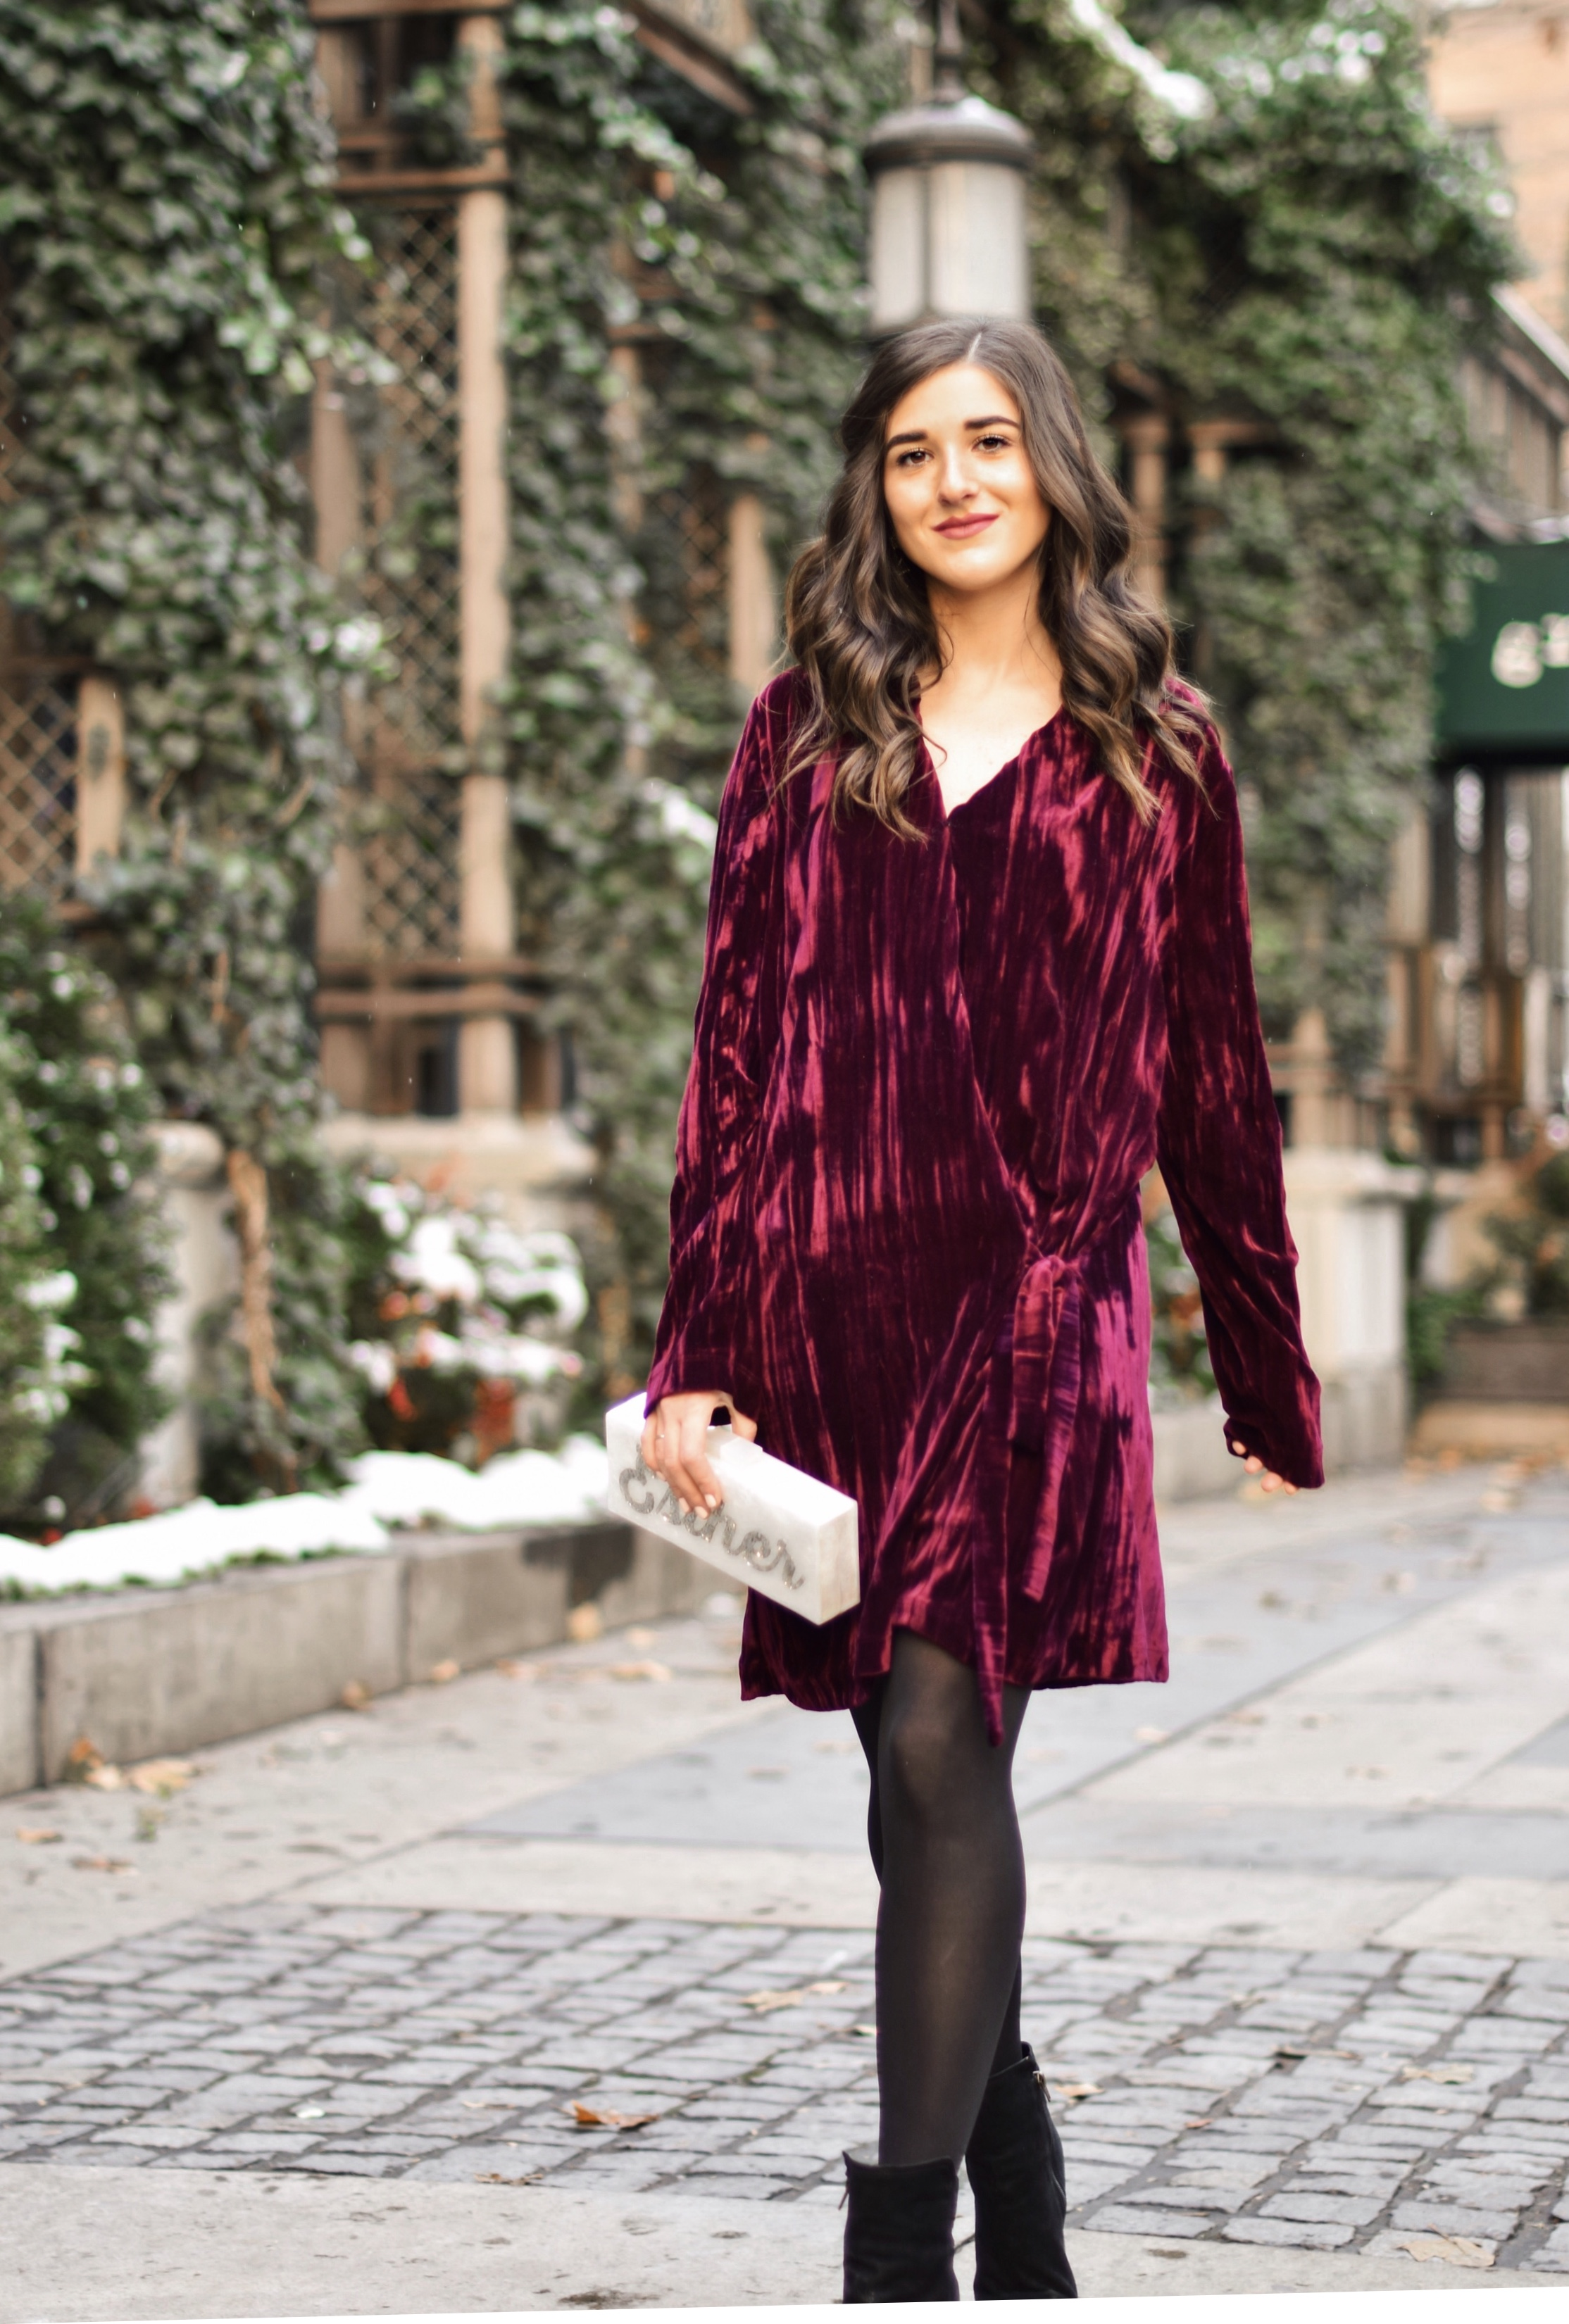 17 Tips On Building An Instagram Following Maroon Velvet Dress Black Booties Esther Santer Fashion Blog NYC Street Style Blogger Outfit OOTD Trendy Zara Online Shopping Winter Monogram Box Bag Clutch Shoes M4D3 Hue Tights Wear Wavy Hair Simple Classic.jpg